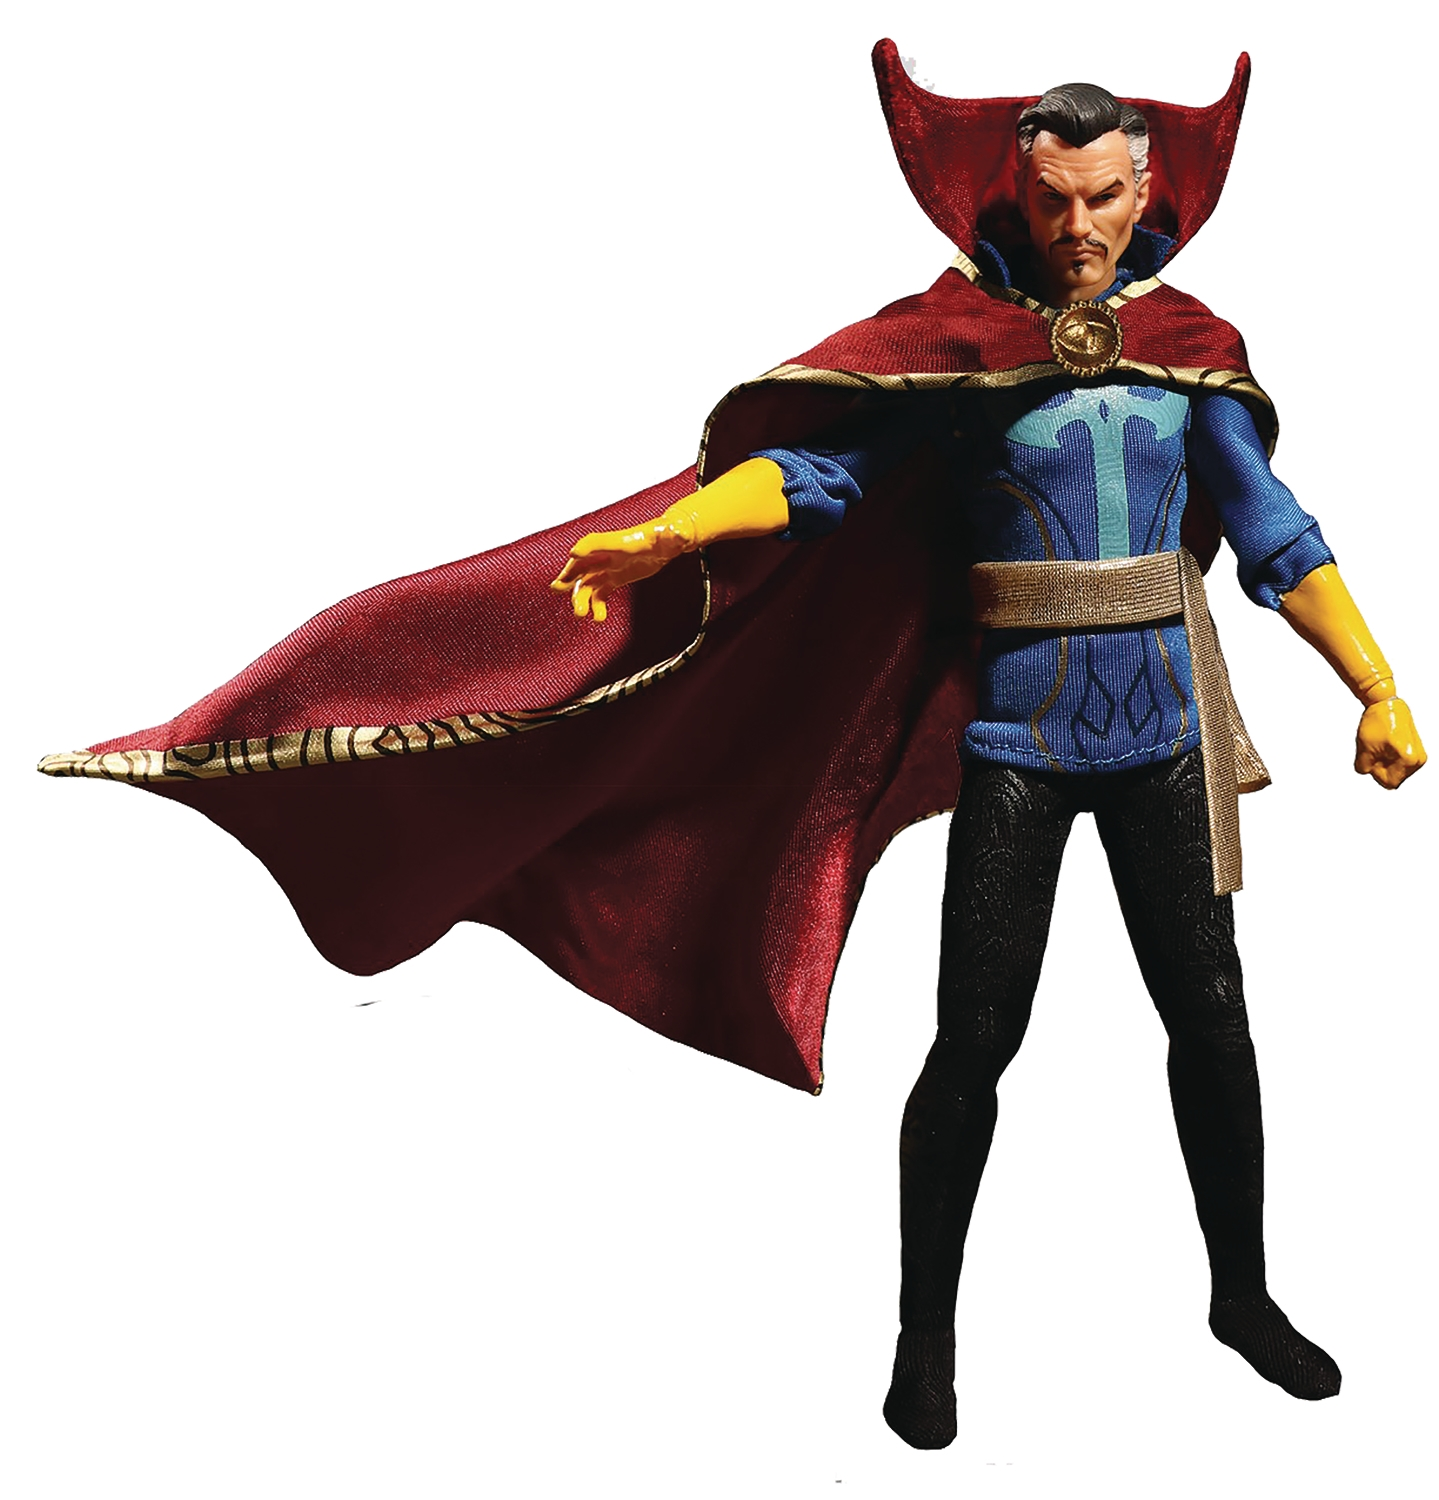 Marvel: Doctor Strange (One:12 Collective Action Figure)